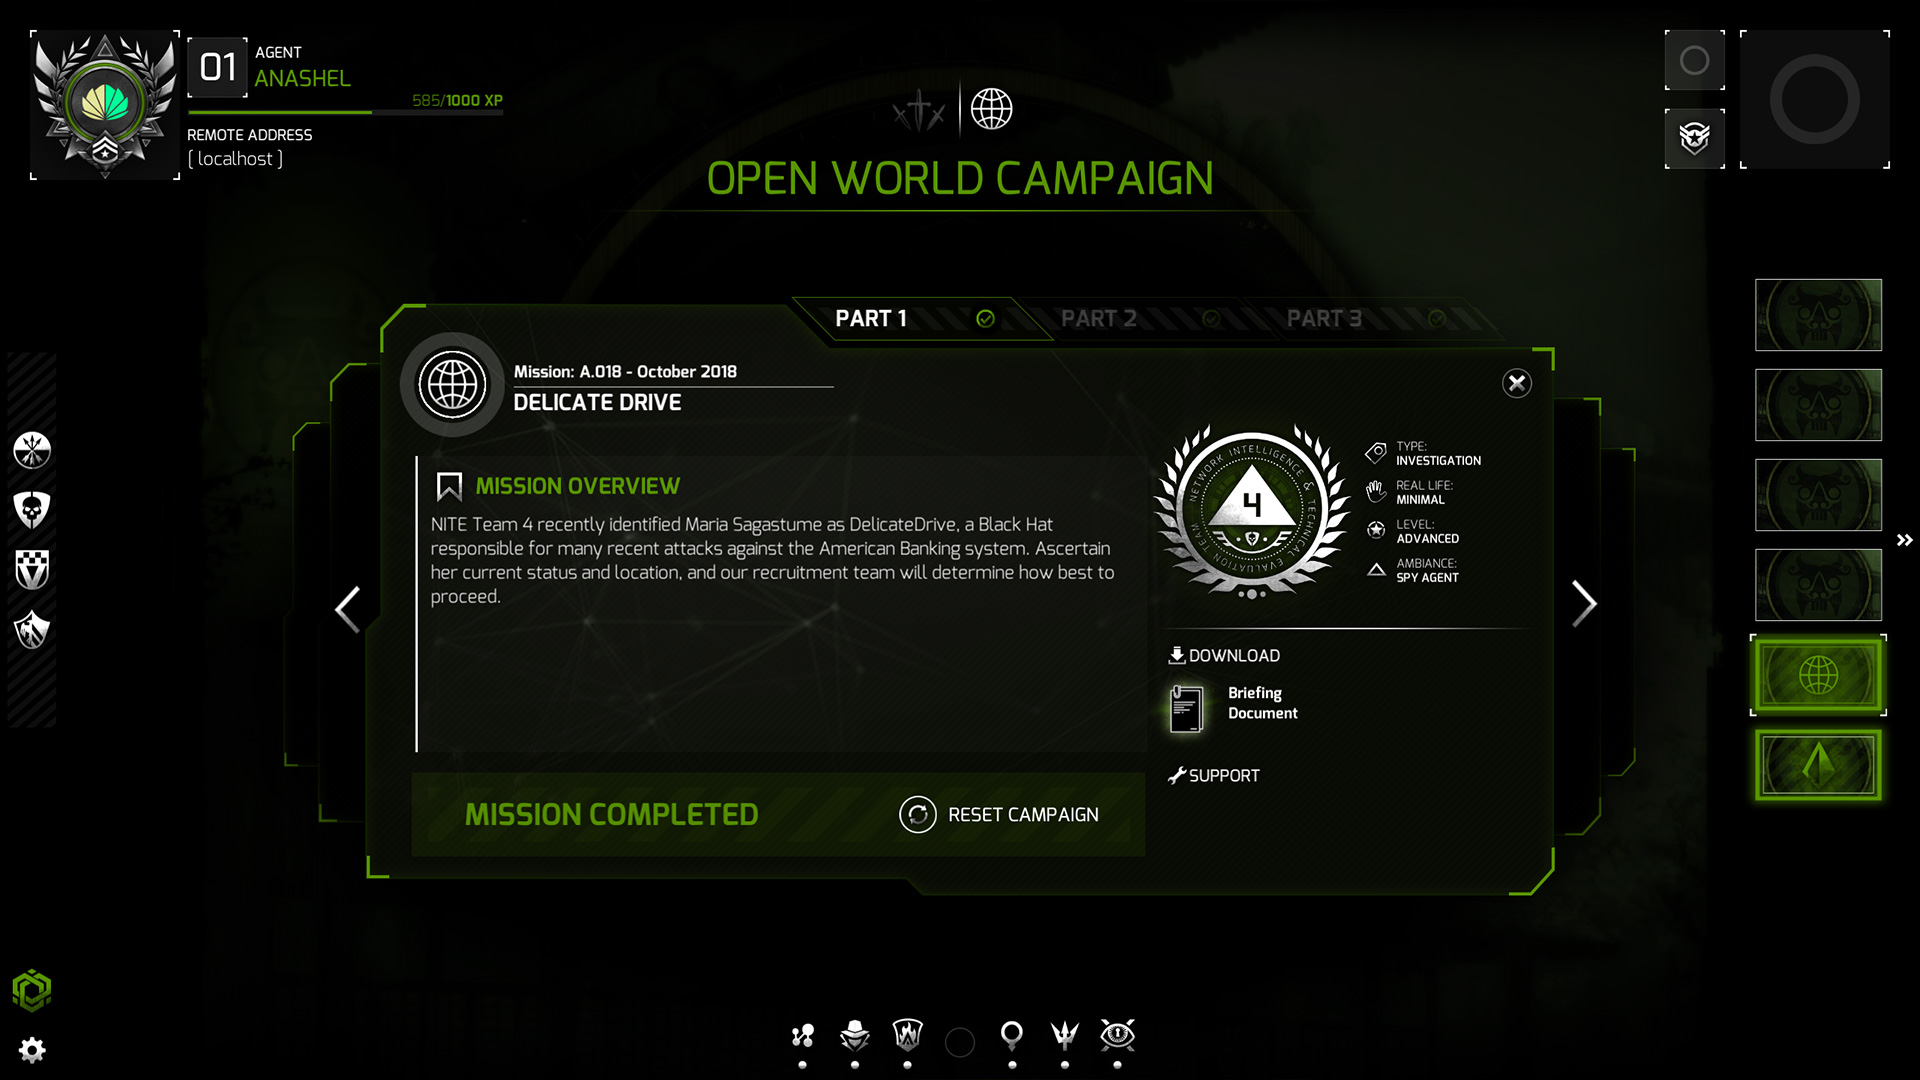 Nite Team 4 Military Hacking Division On Steam